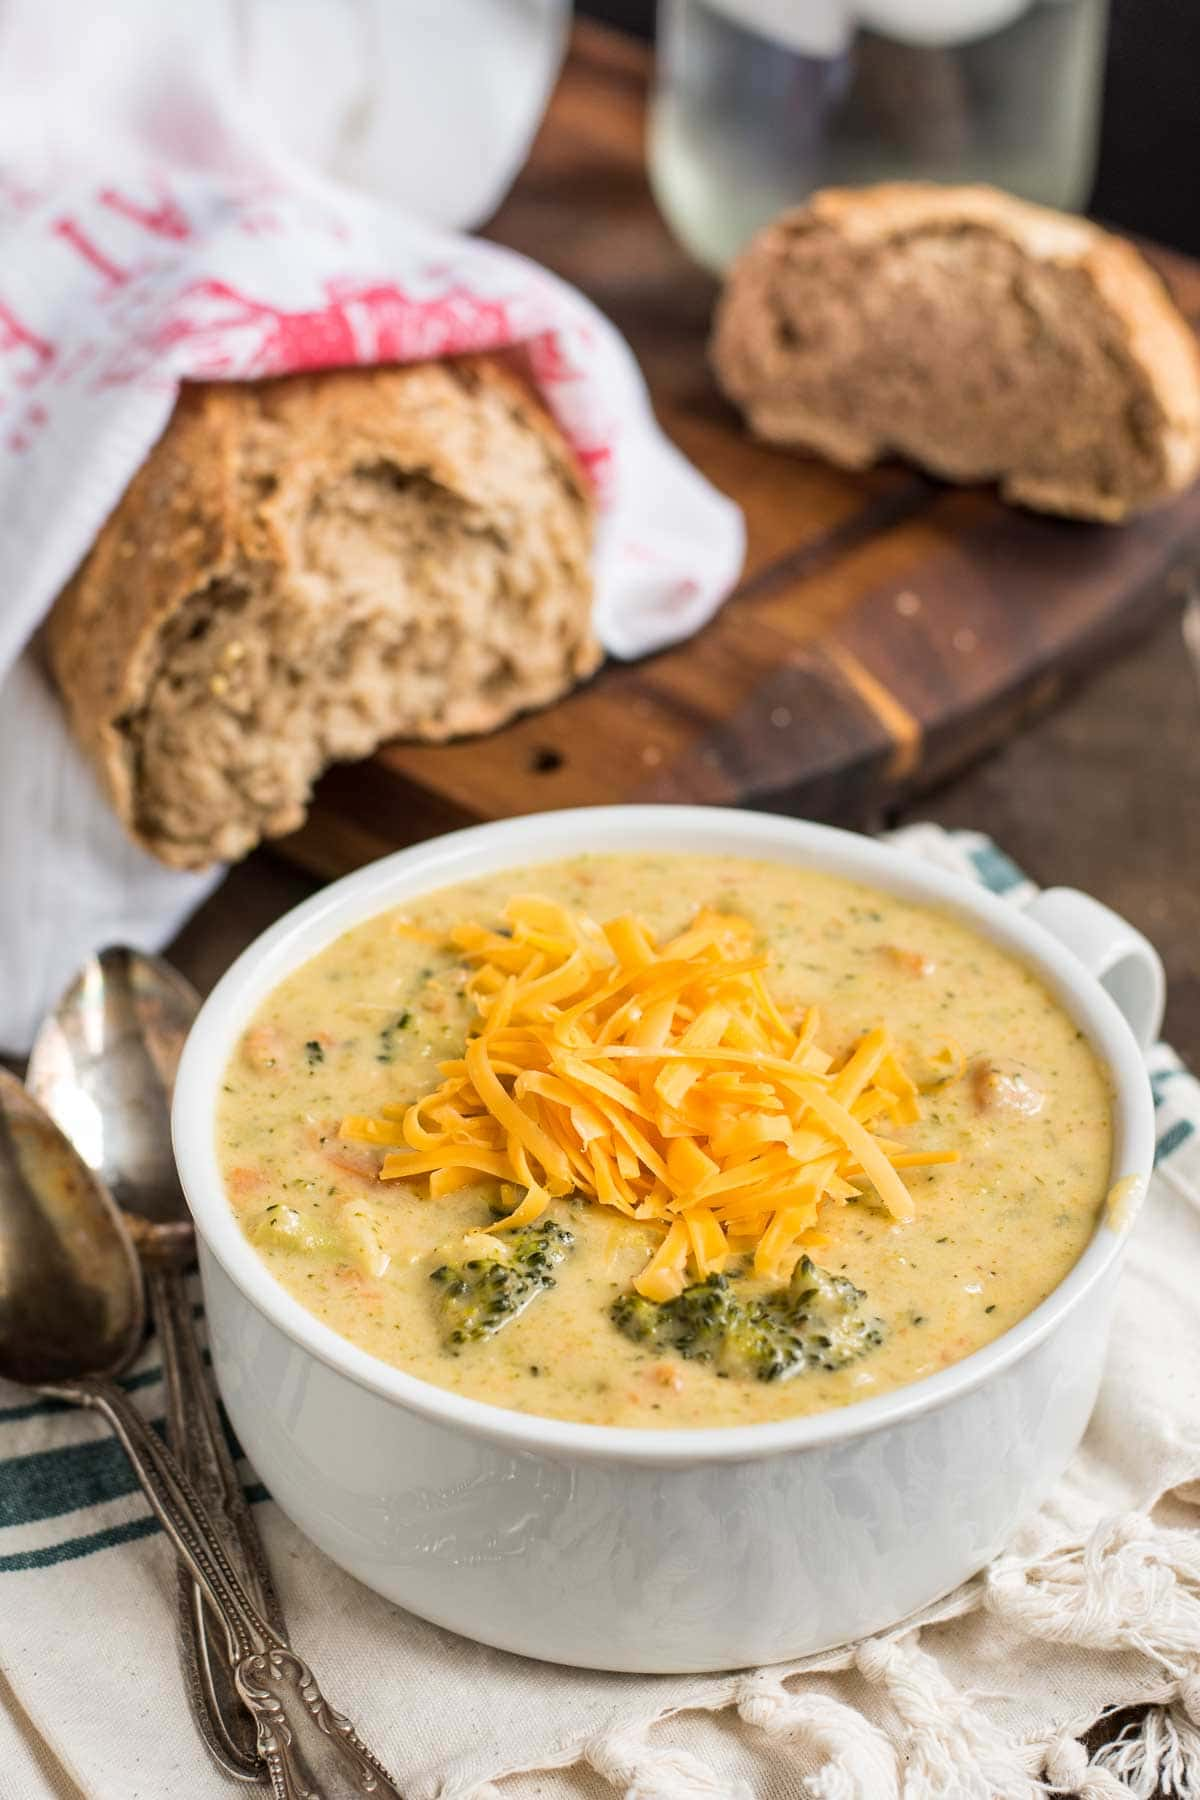 Creamy, cheesy, and easy to make, this Broccoli Cheddar Soup is a staple recipe!